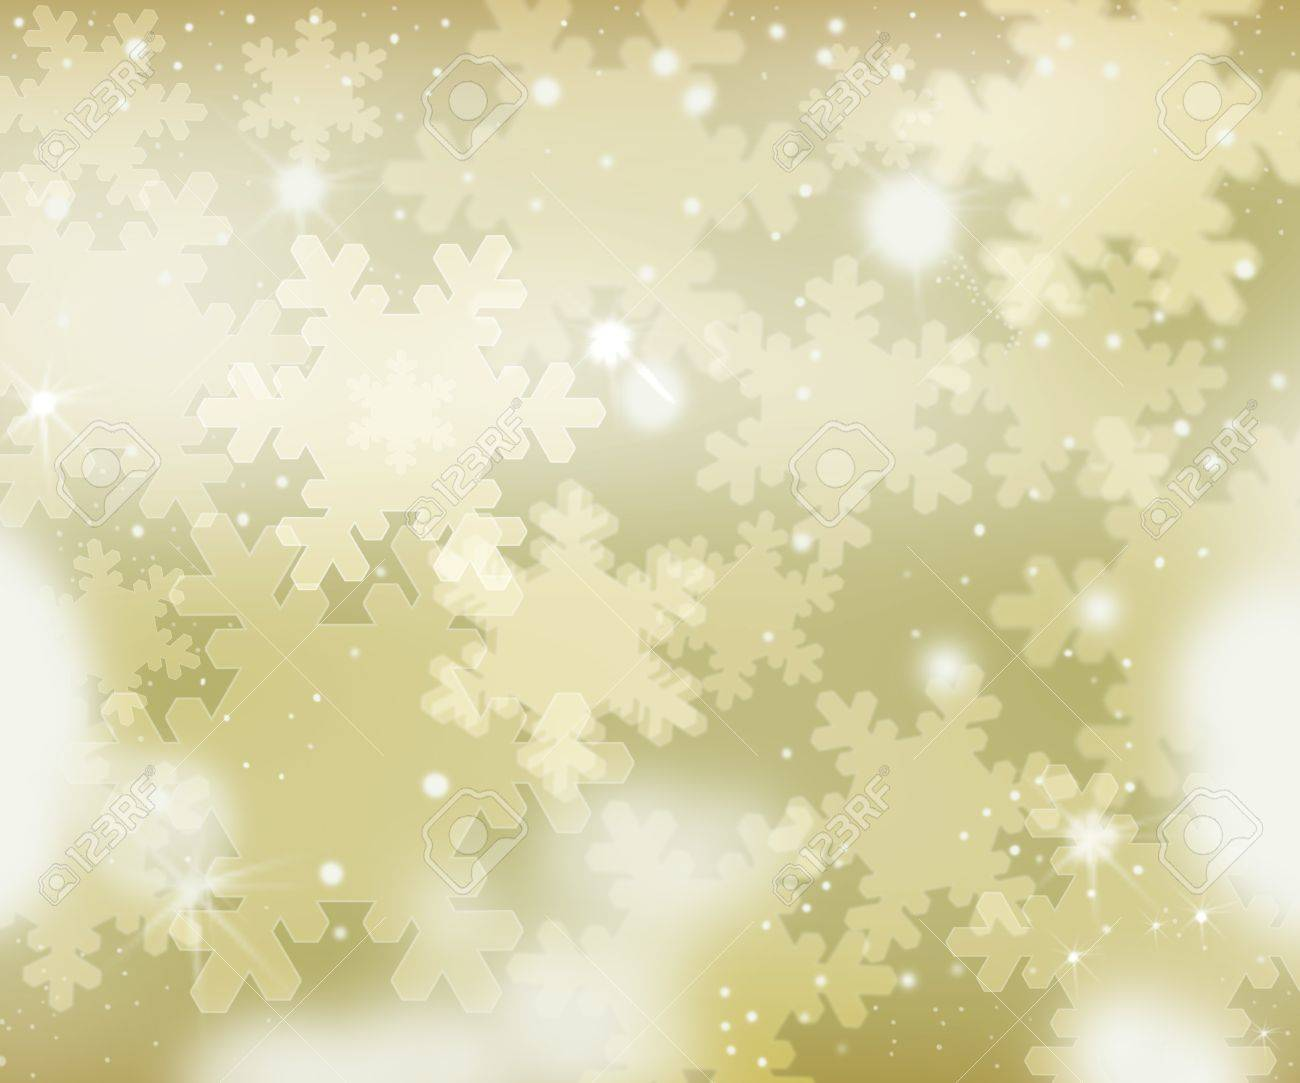 Glittery gold Christmas background Stock Photo - 10277797